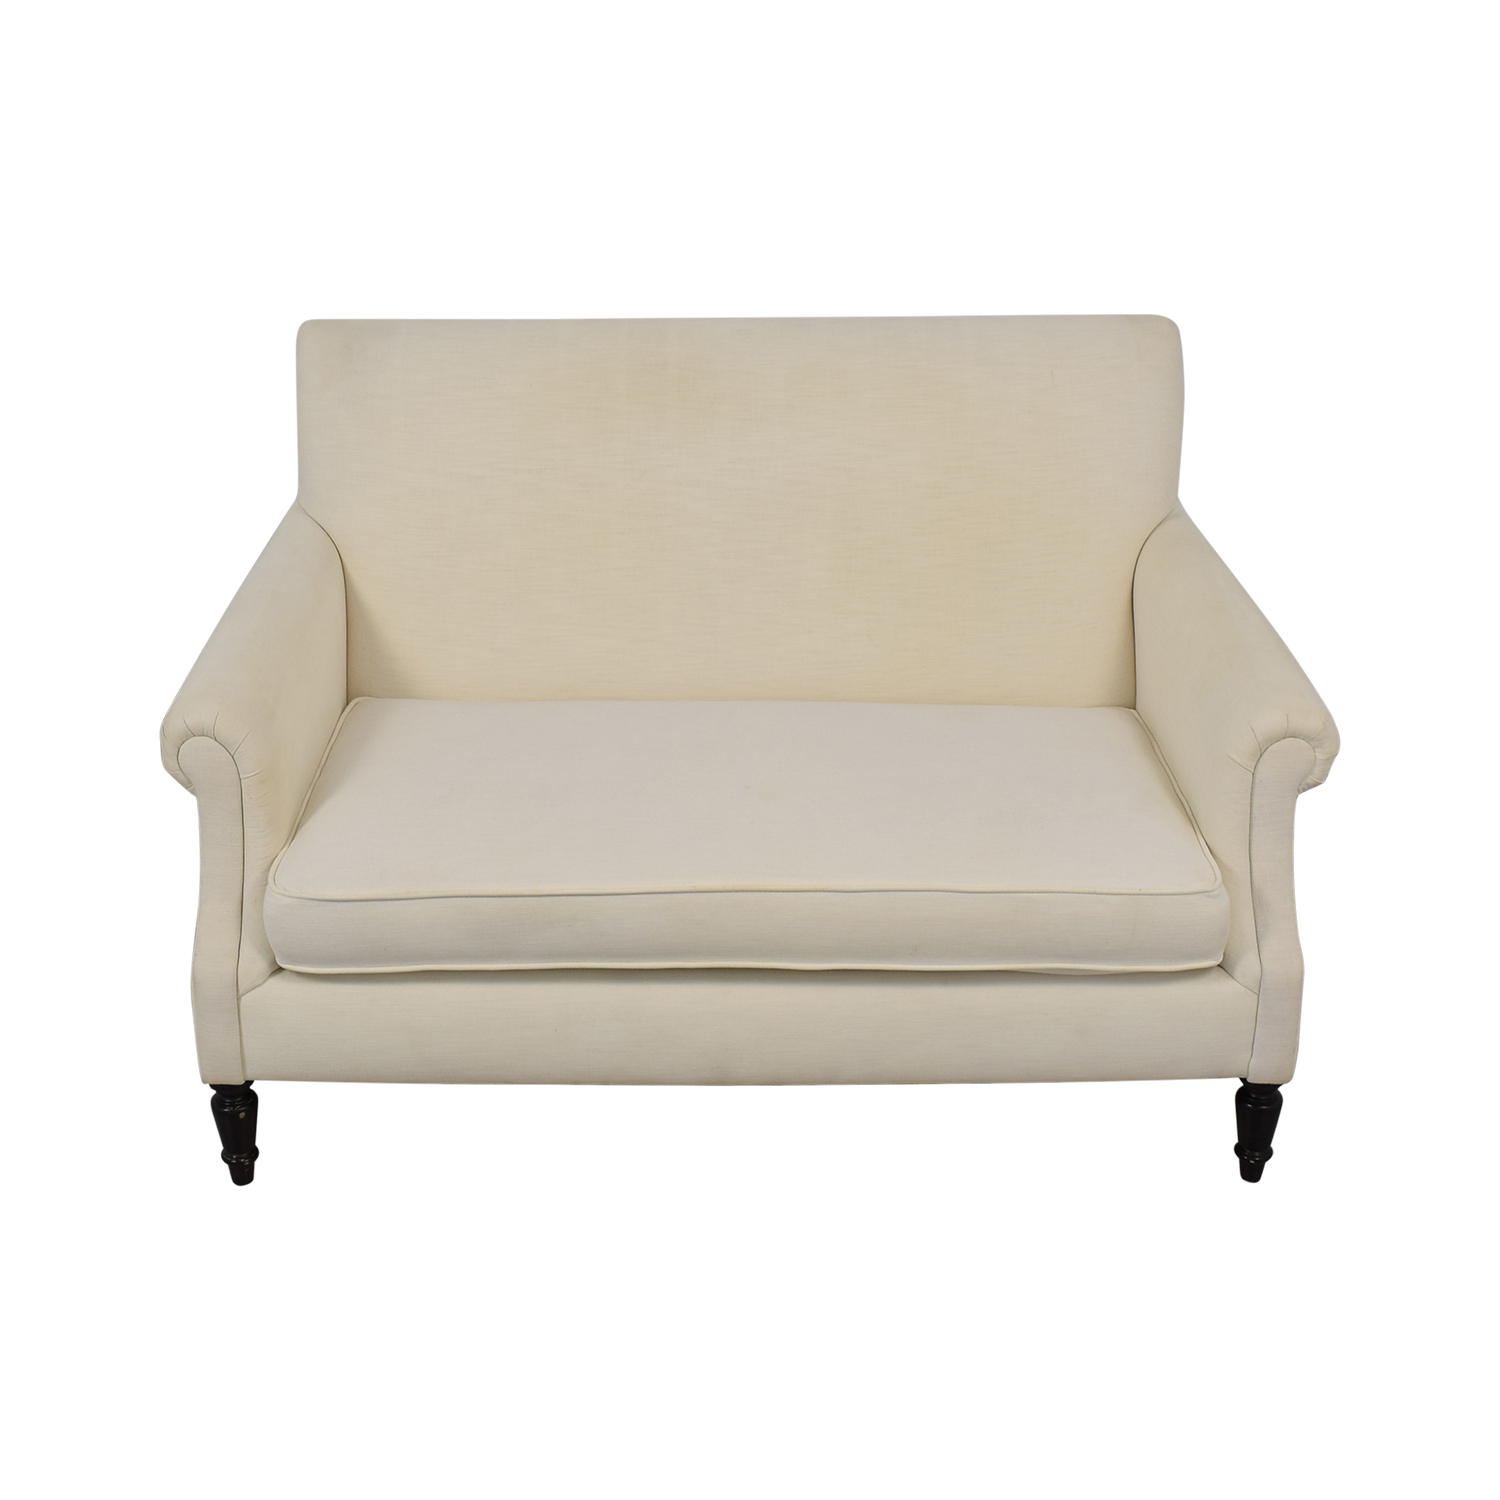 Crate & Barrel Roll Arm Loveseat / Loveseats